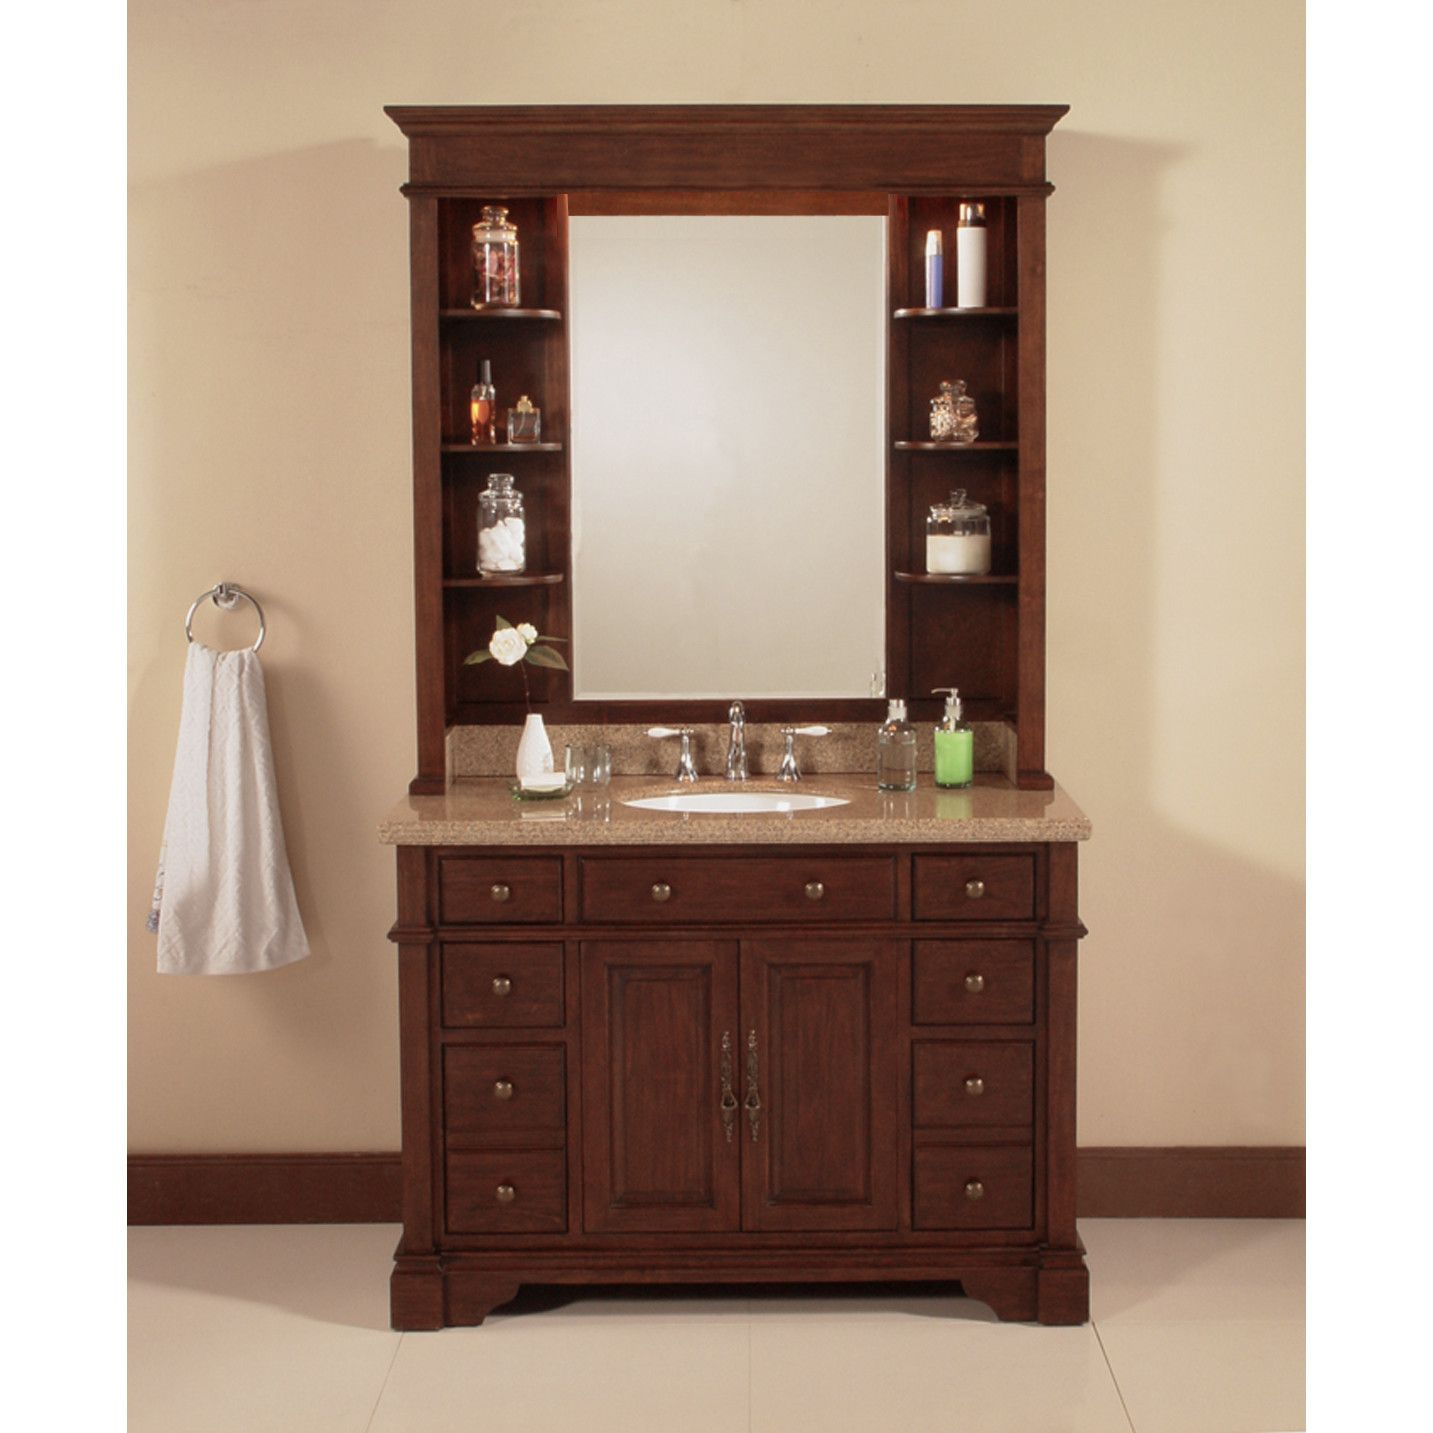 cutler katherine full found u bath single wall floating at size kitchen it wayfair youull vanity of bathroom mounted vanities silhouette love